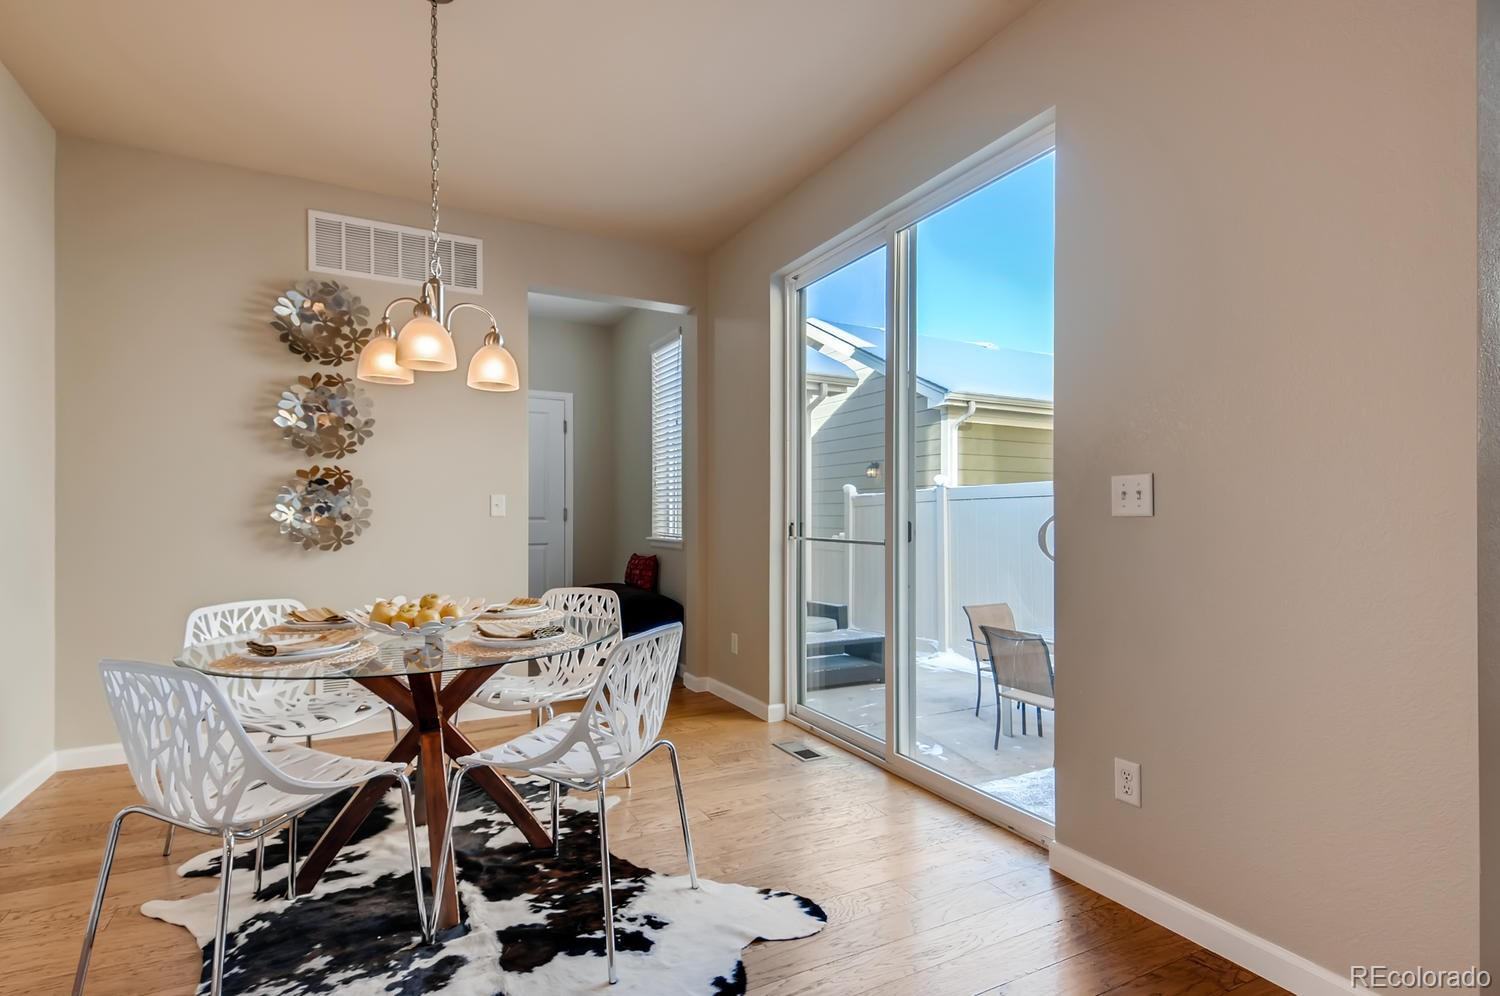 MLS# 7221066 - 7 - 6288 Orchard Court #B, Arvada, CO 80403